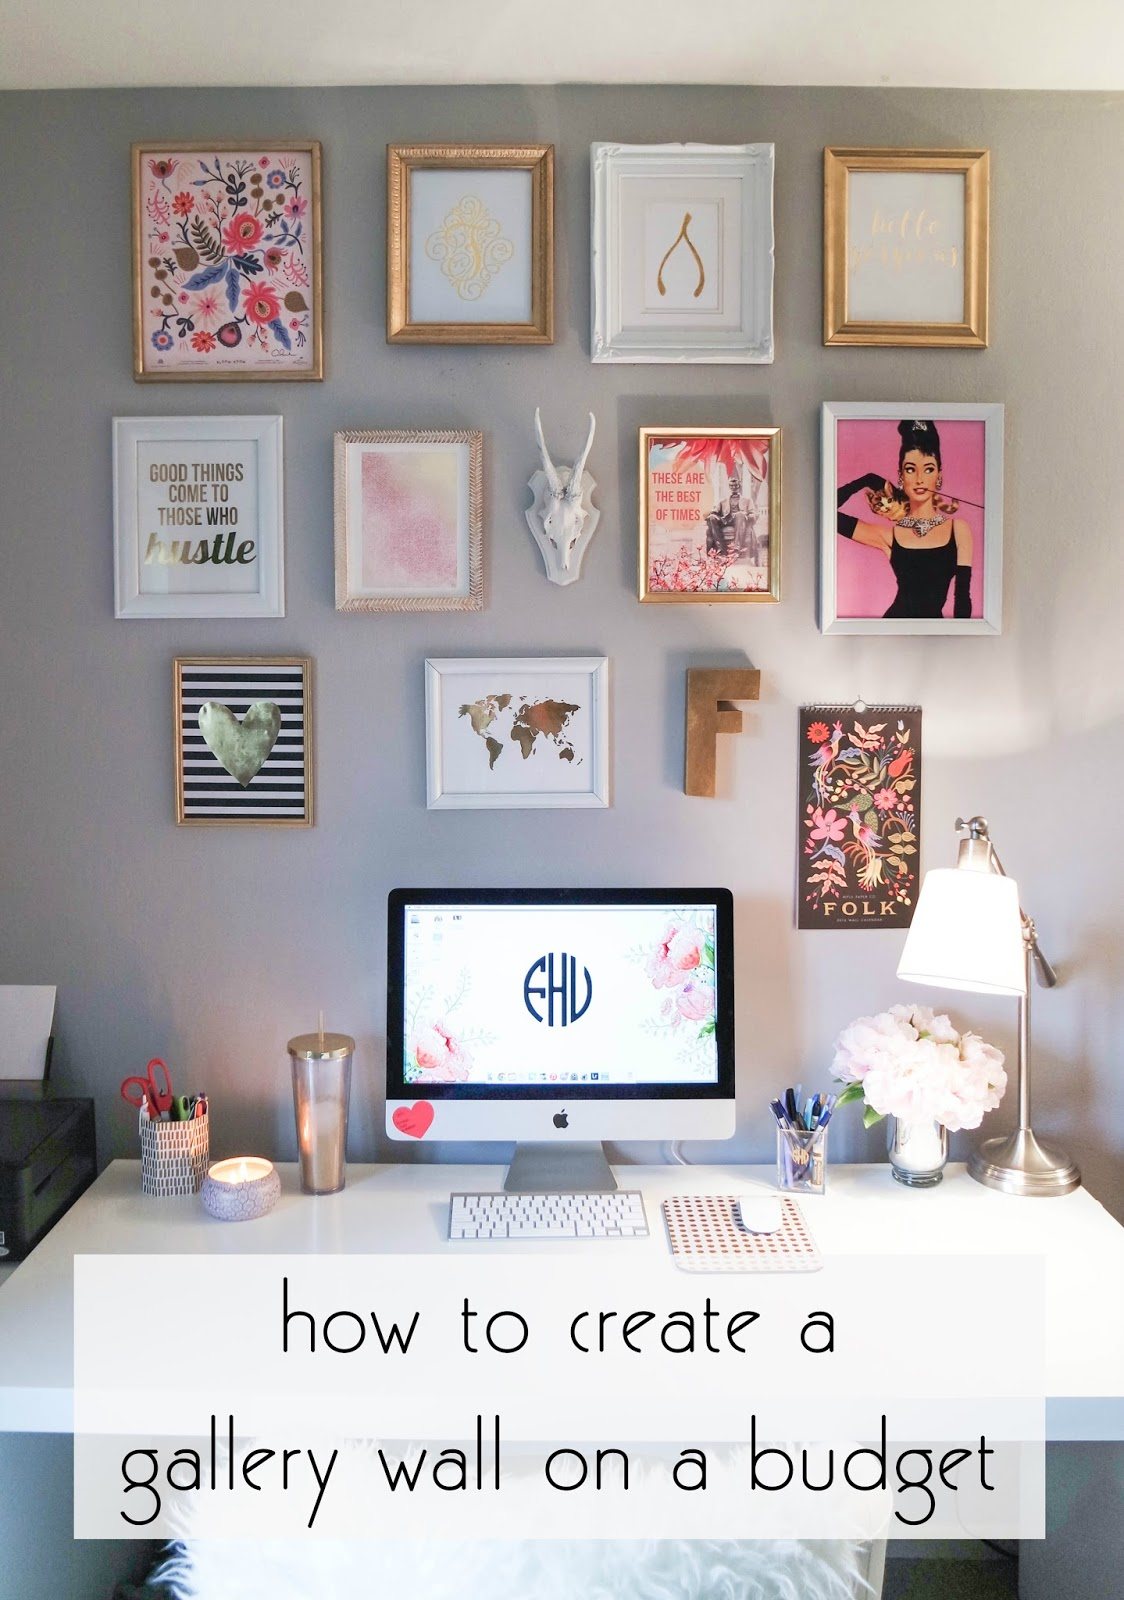 Franish Creating A Gallery Wall On A Budget